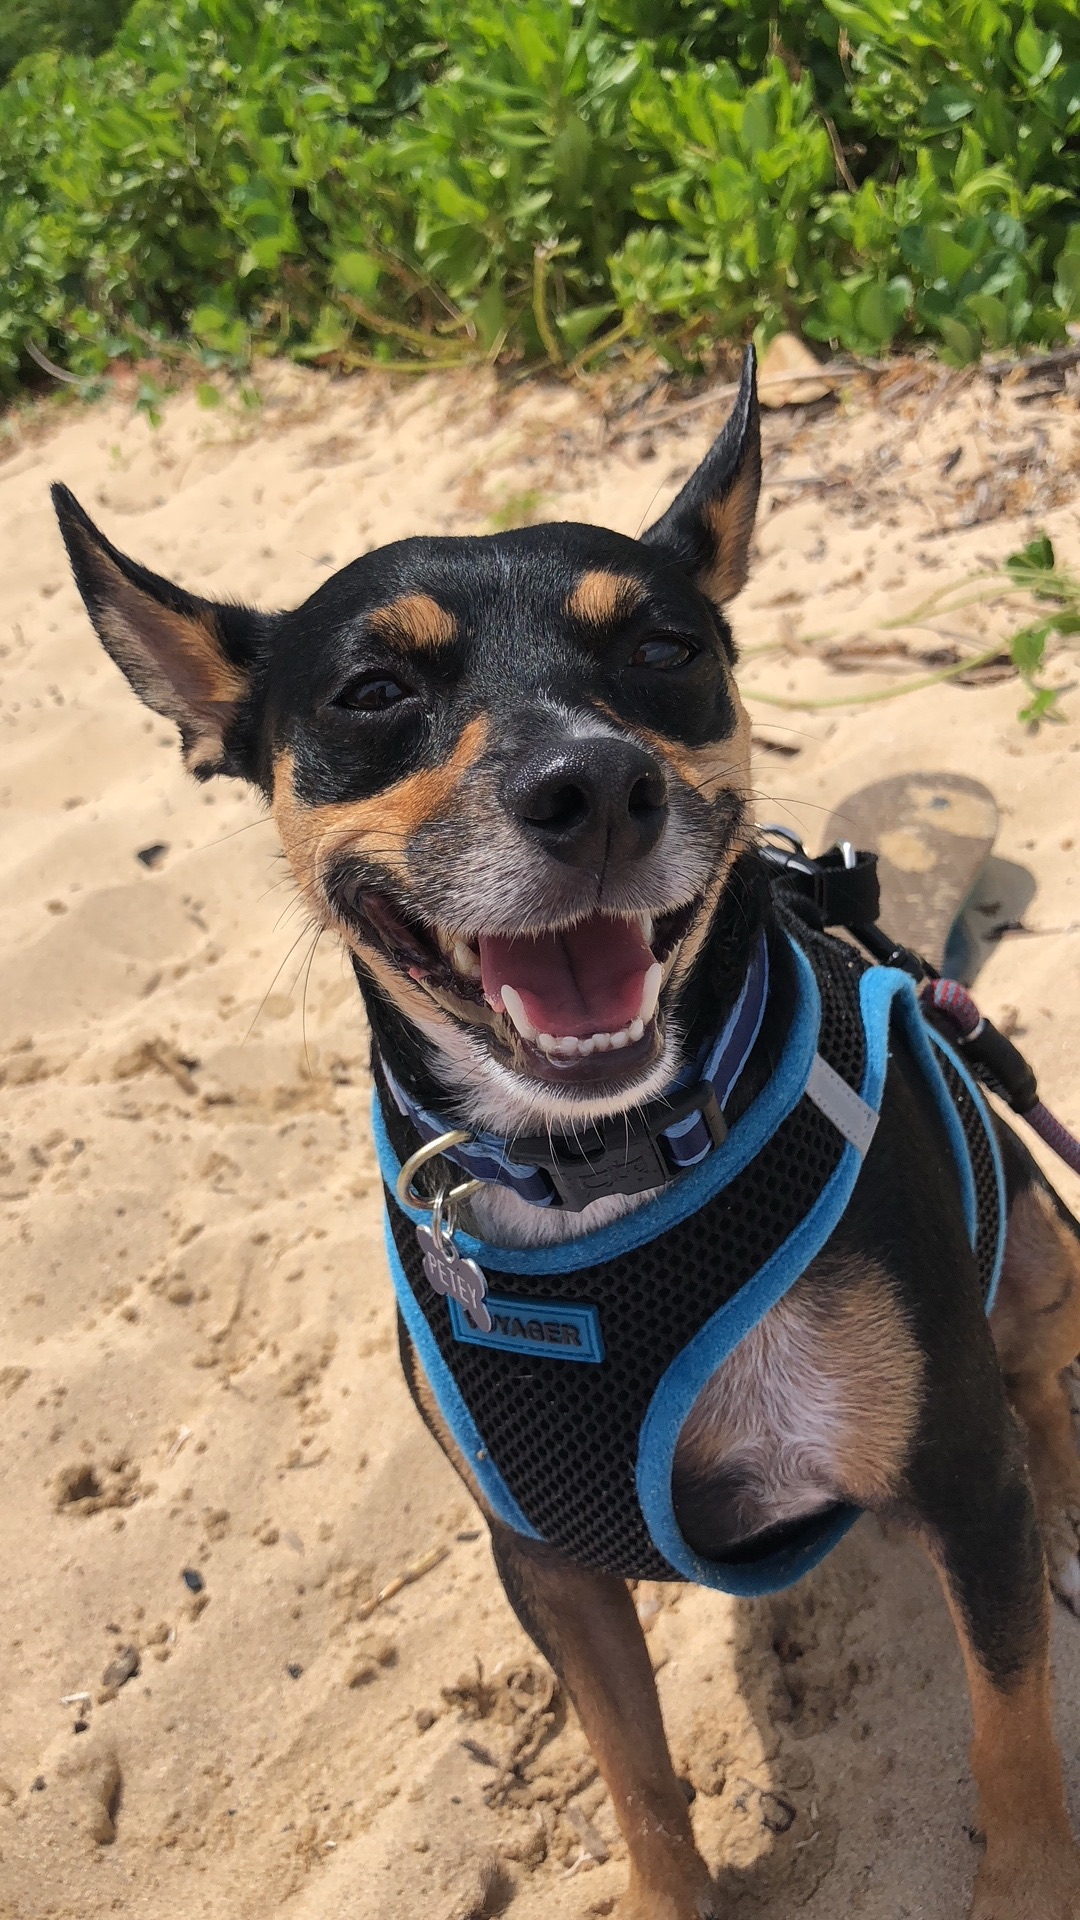 PETEY: 3 yr old MinPin Terrier mix. I'm from Kaimuki and my favorite thing to do is go to the beach and play fetch!